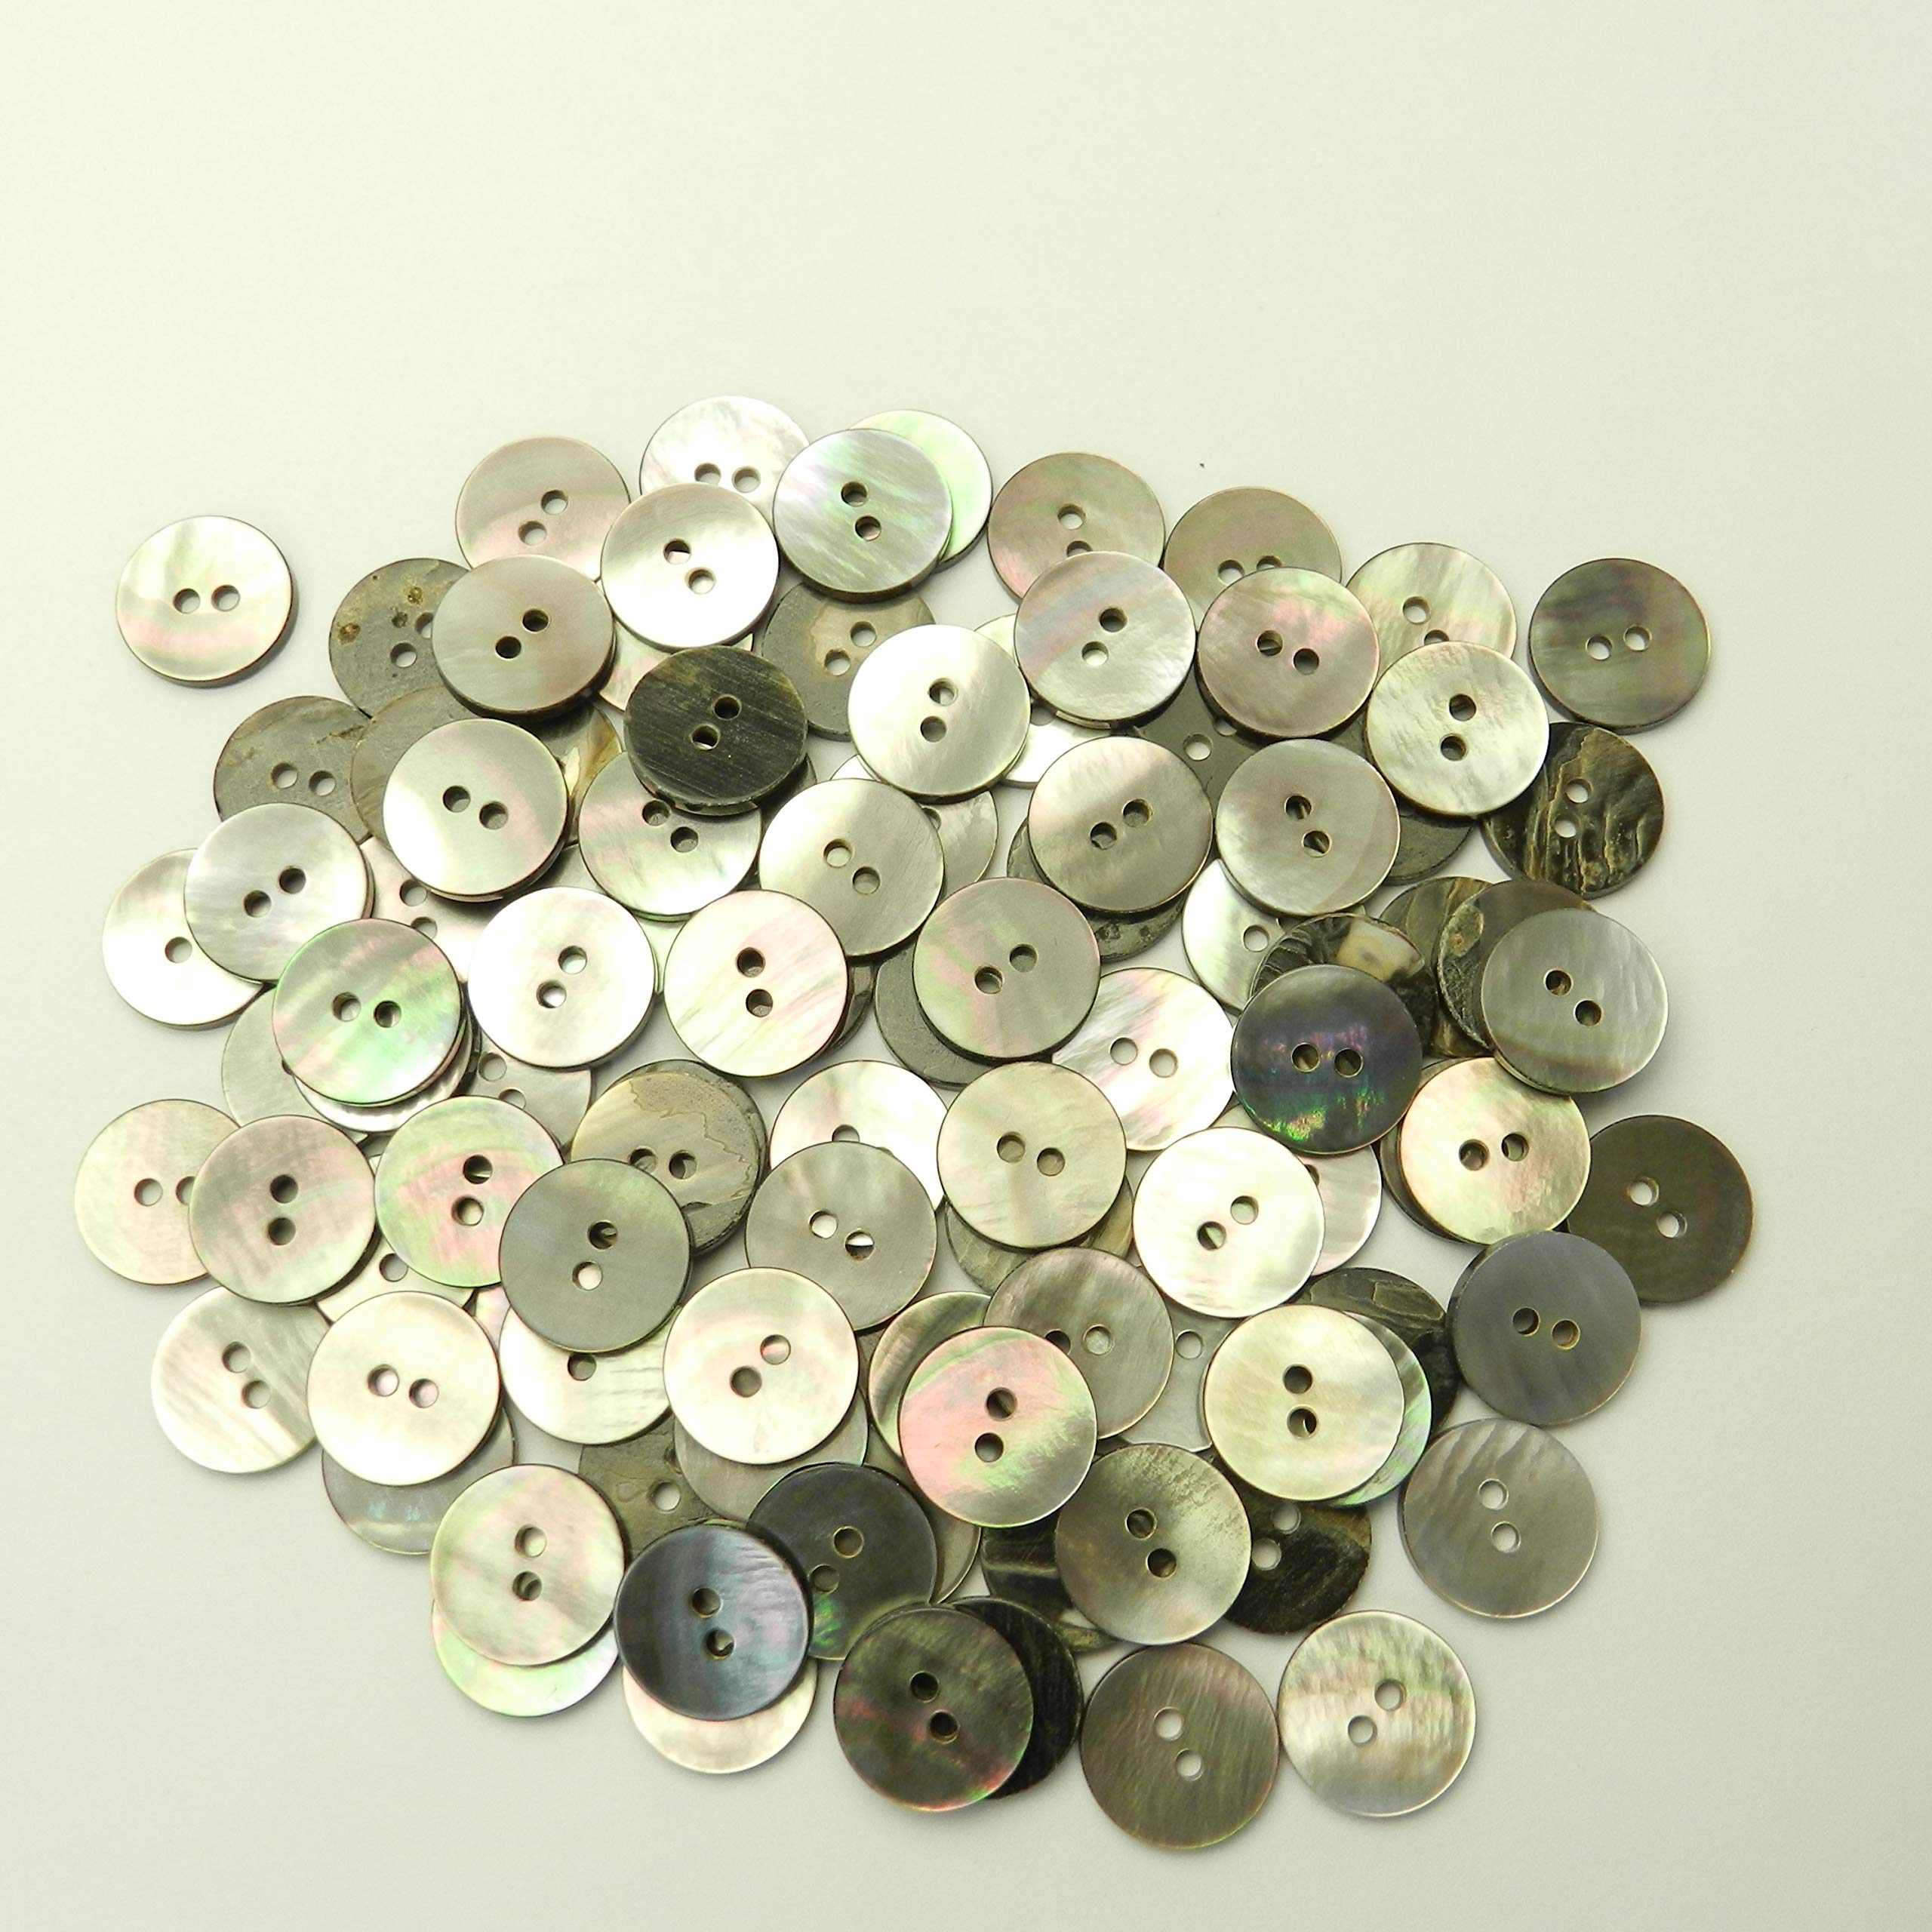 Black Mother of Pearl Shell Button 0.6 inches (5/8'' or 15 mm) (Thick Ver.) 2 Holes Ideal for Jacket Cuffs Cardigans 100 Pieces KUROCHOSARAATU-15-BK-014E by Taisho Resin Star Button